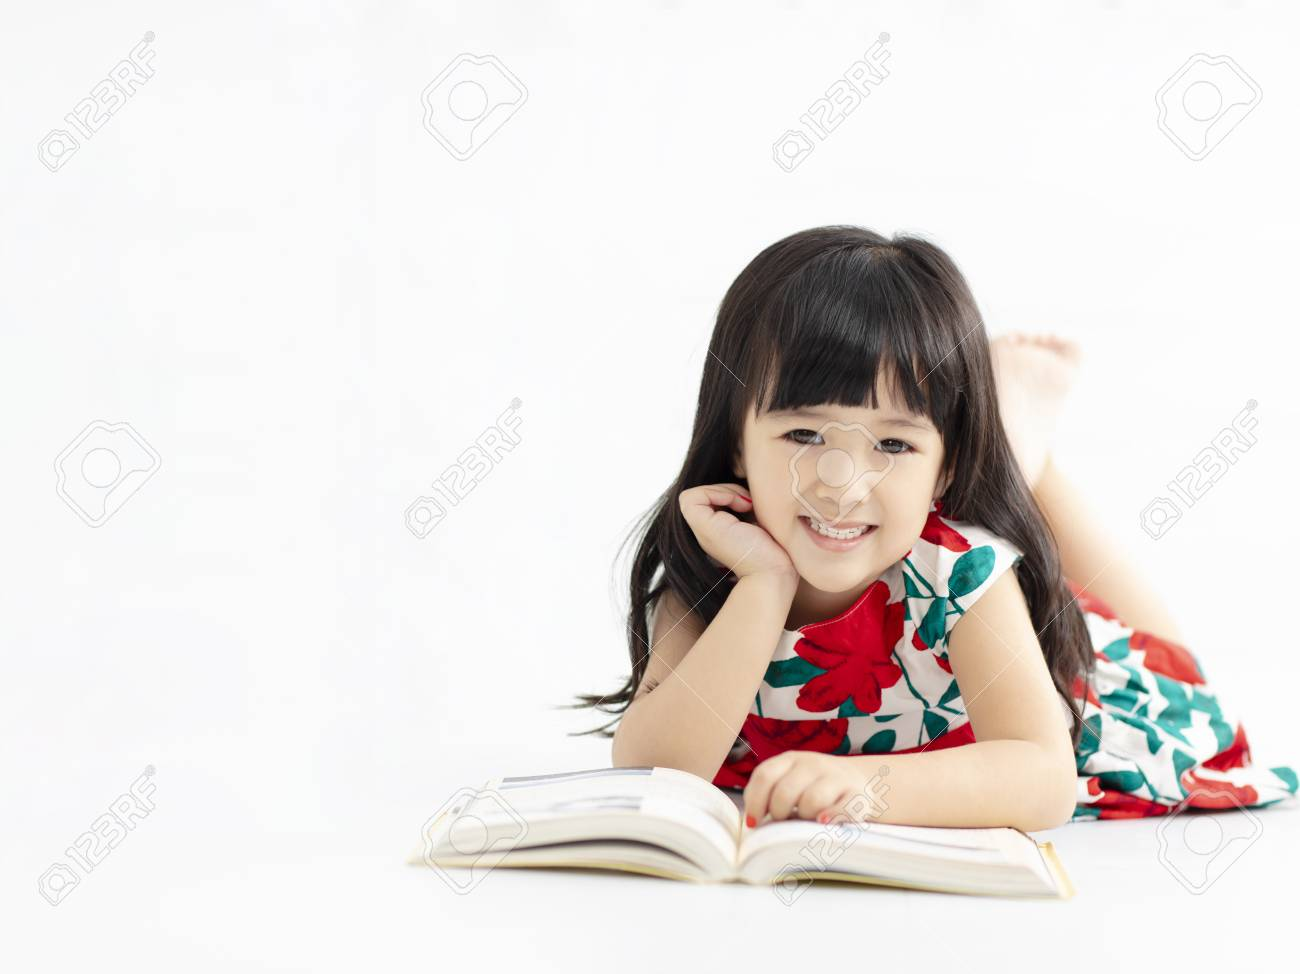 smiling little girl with book lying on the floor - 115661040